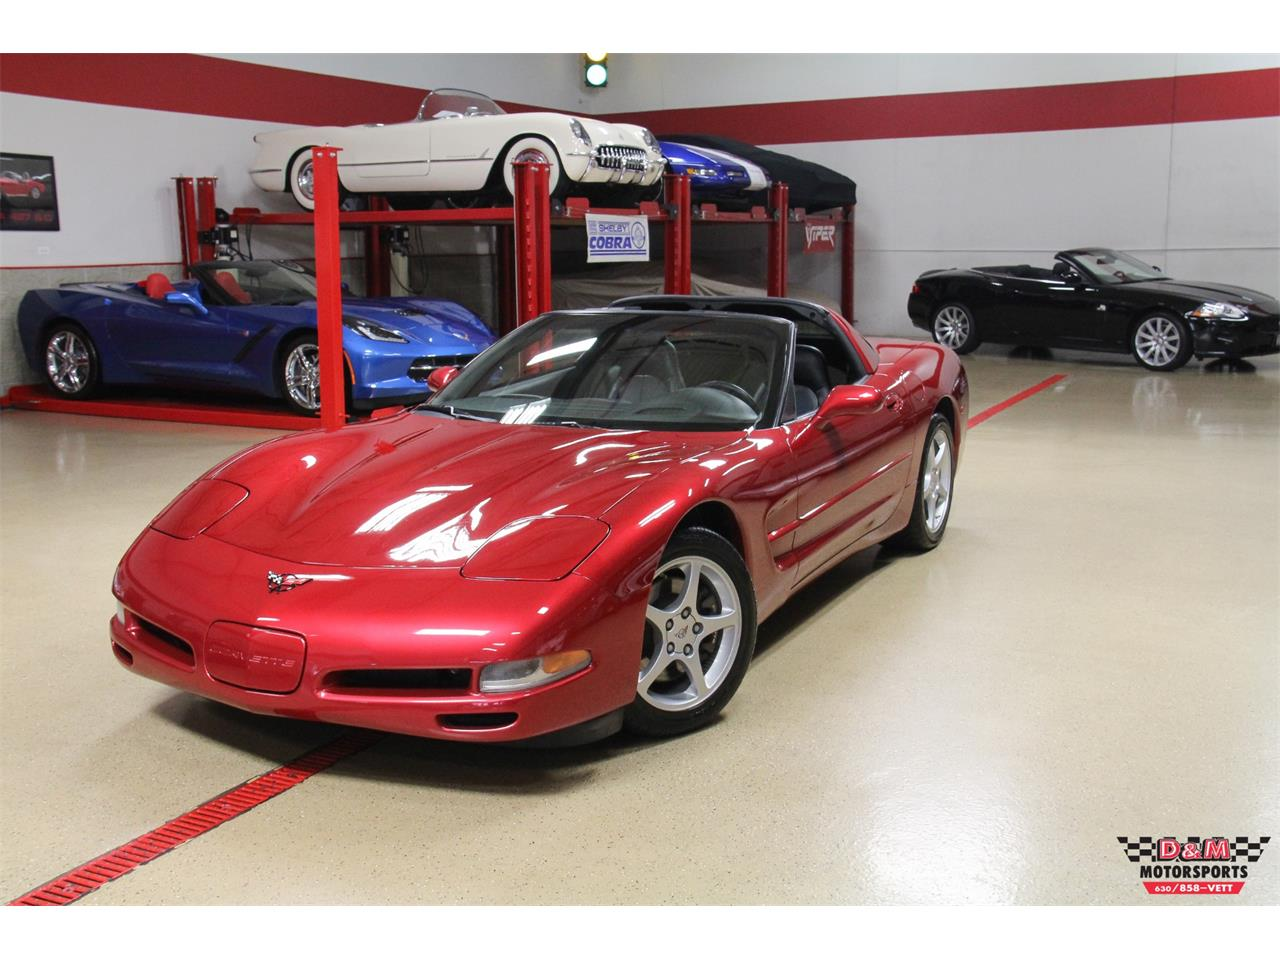 Large Picture of 2000 Corvette located in Glen Ellyn Illinois - $15,995.00 Offered by D & M Motorsports - LVA3